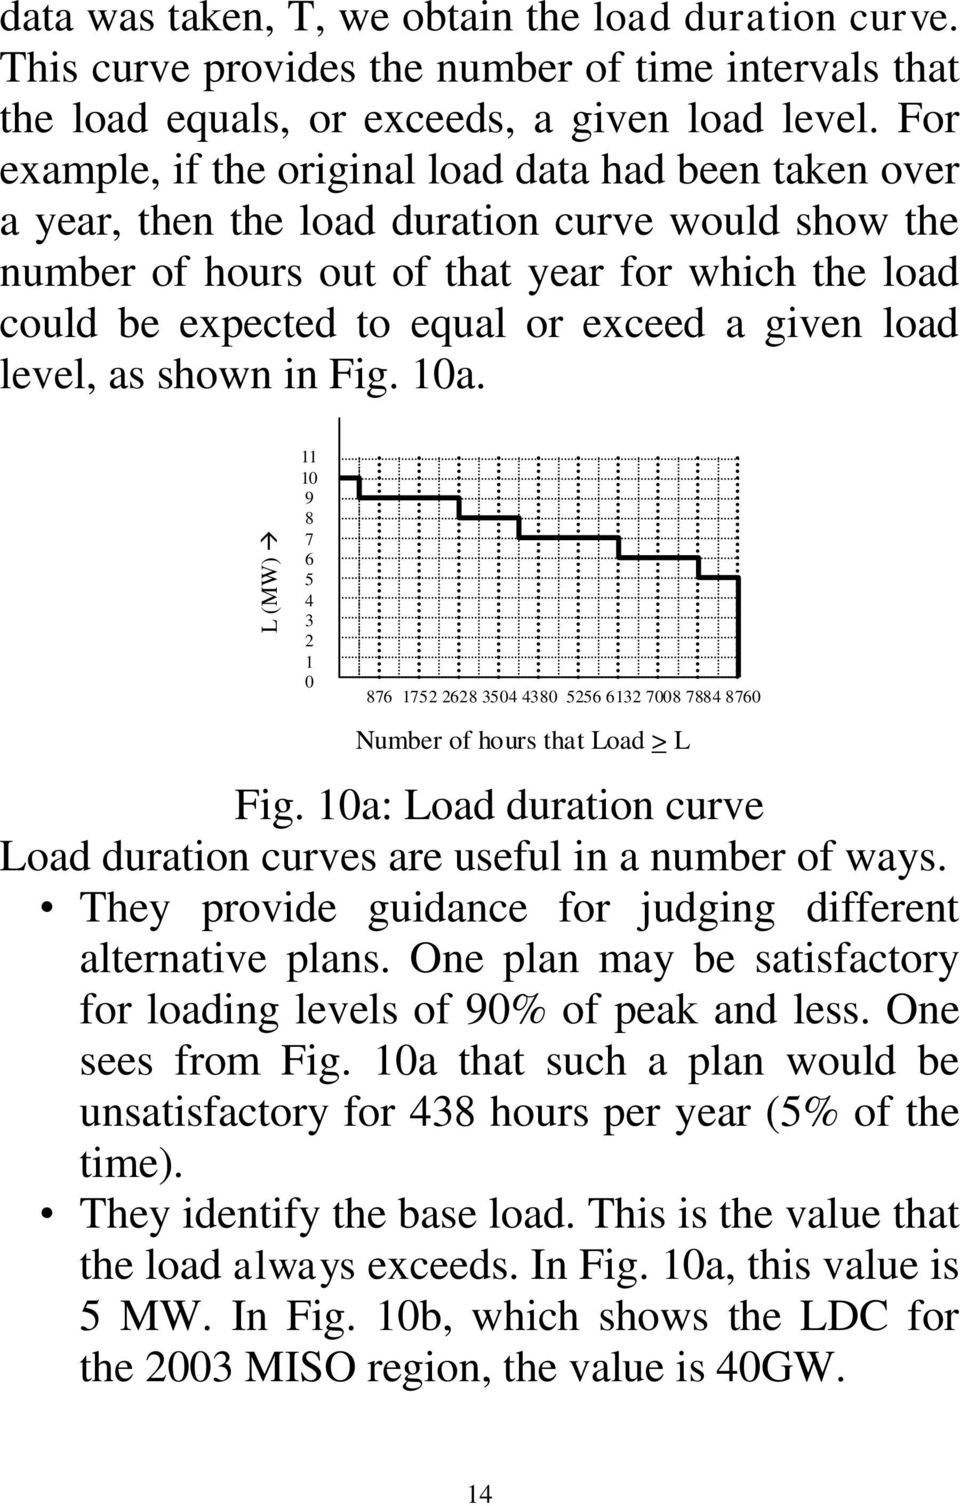 shown in Fig. 0a. 0 9 8 7 6 5 4 3 2 0 876 752 2628 3504 4380 5256 632 7008 7884 8760 Numbr of hours that Load > L Fig. 0a: Load duration curv Load duration curvs ar usful in a numbr of ways.